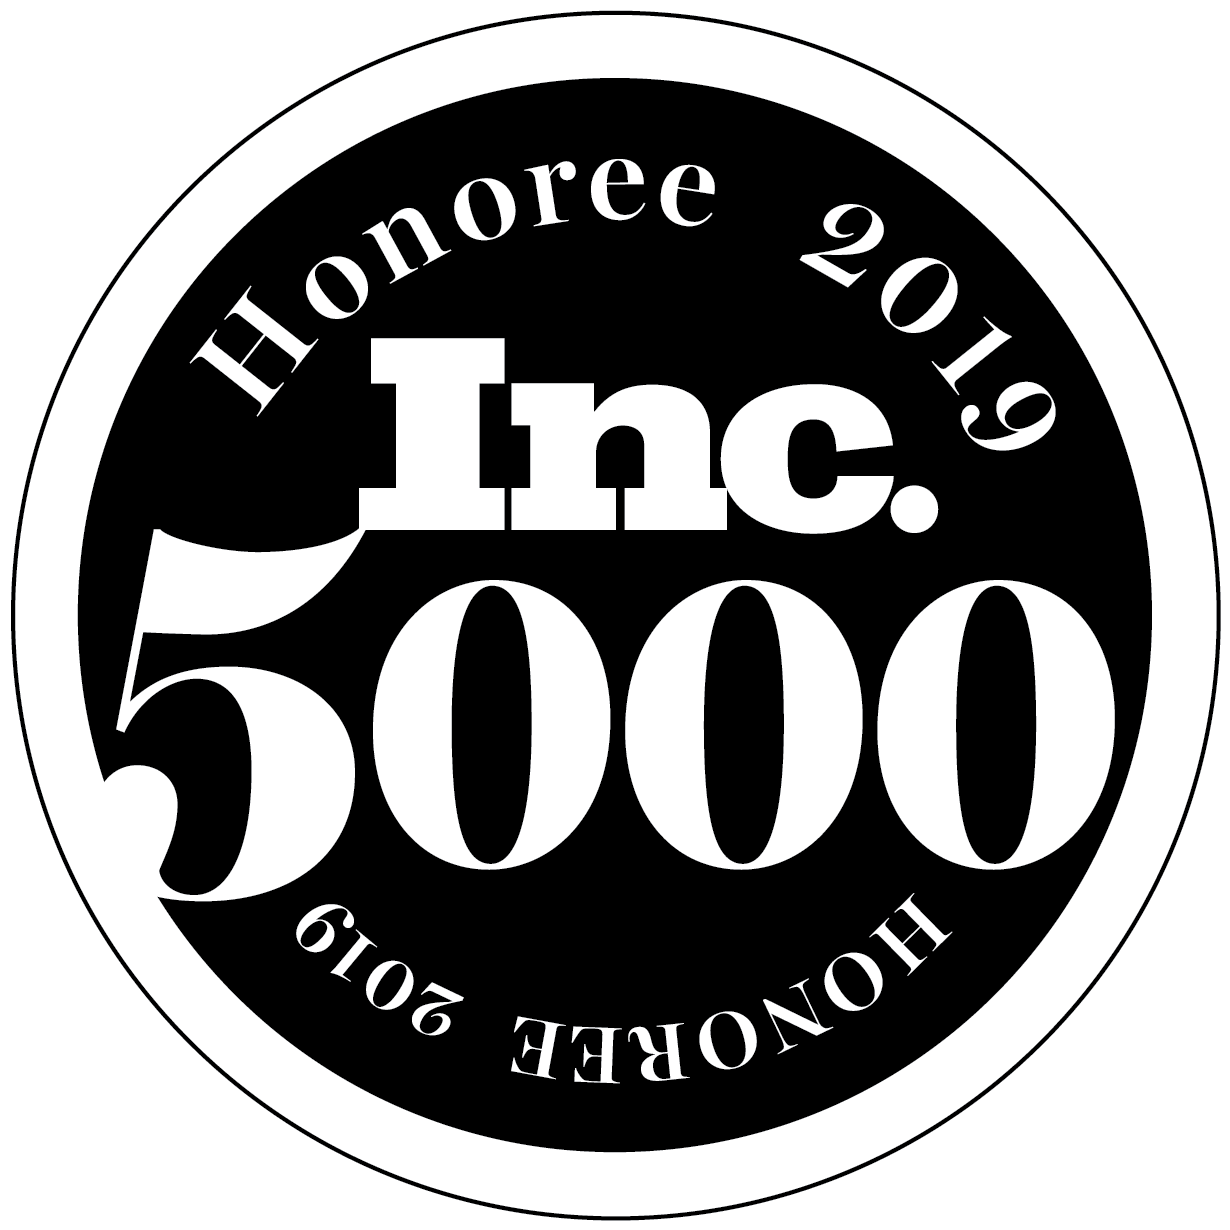 Inc. 5000 Honoree 2019